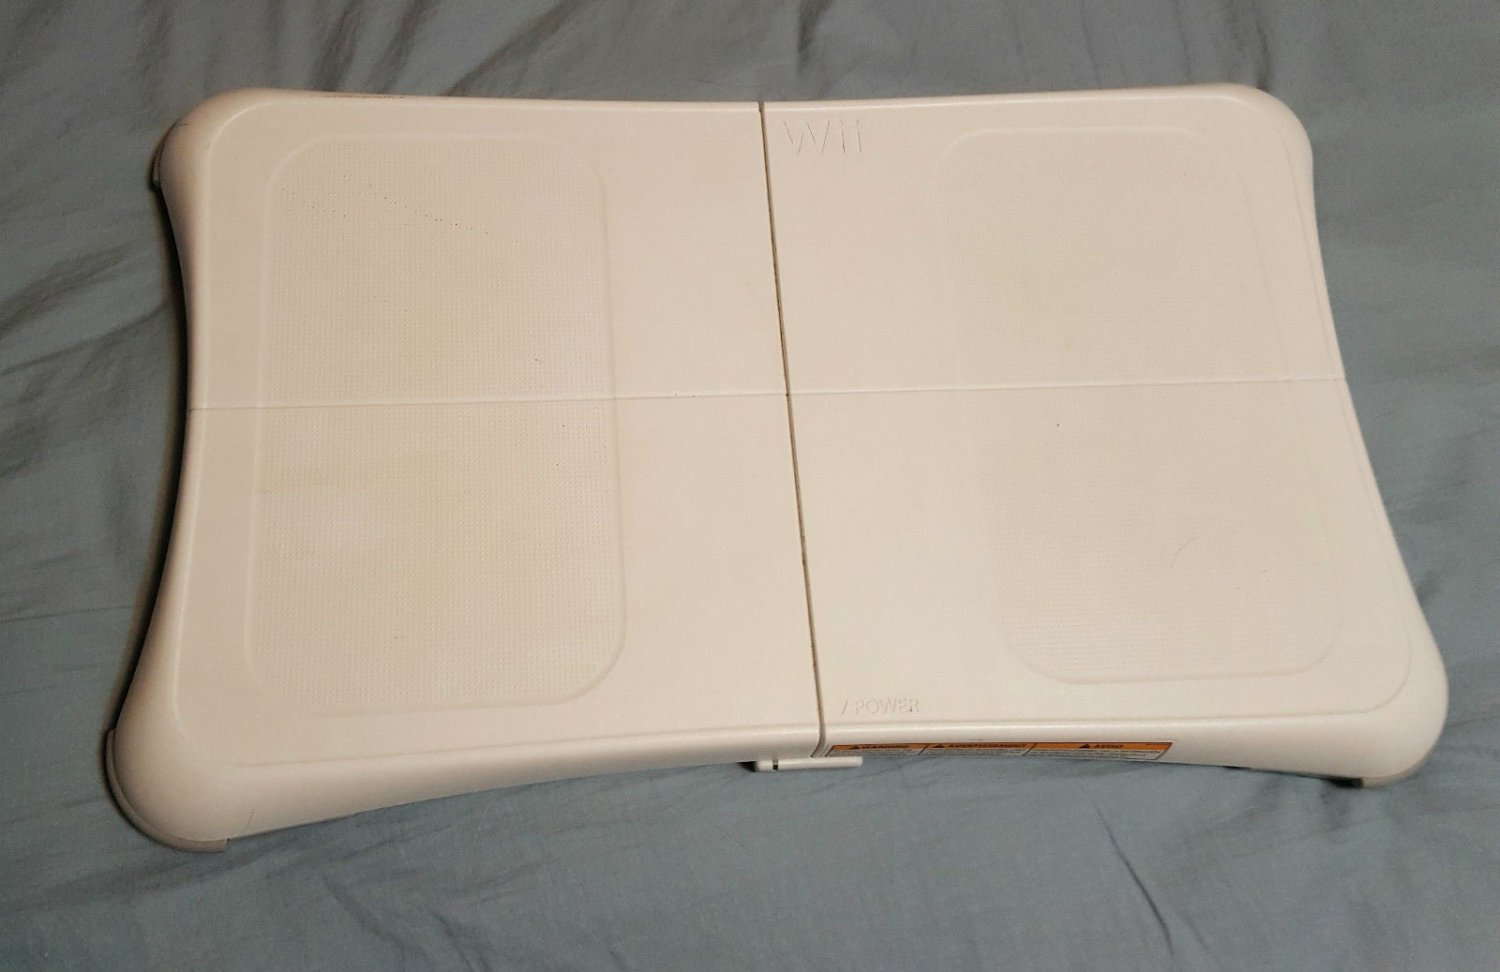 Nintendo Wii Fit Balance Board - Instruction Booklet Included - D&E Universe